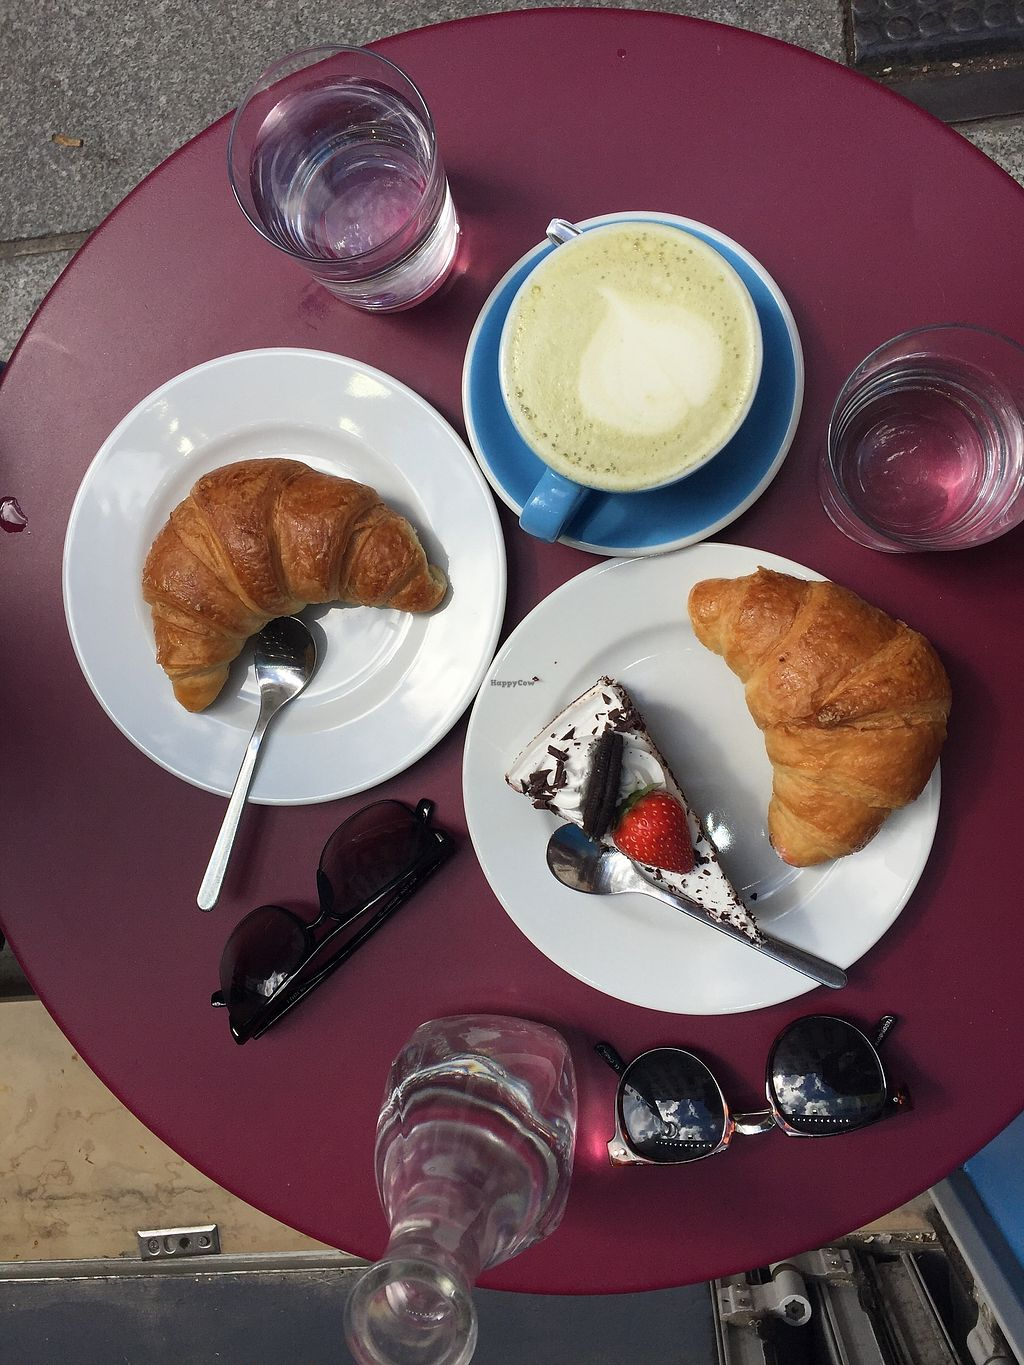 "Photo of Cloud Cakes  by <a href=""/members/profile/alice28"">alice28</a> <br/>Matcha latte, vegan croissants and chocolate cake <br/> March 1, 2018  - <a href='/contact/abuse/image/80175/365386'>Report</a>"